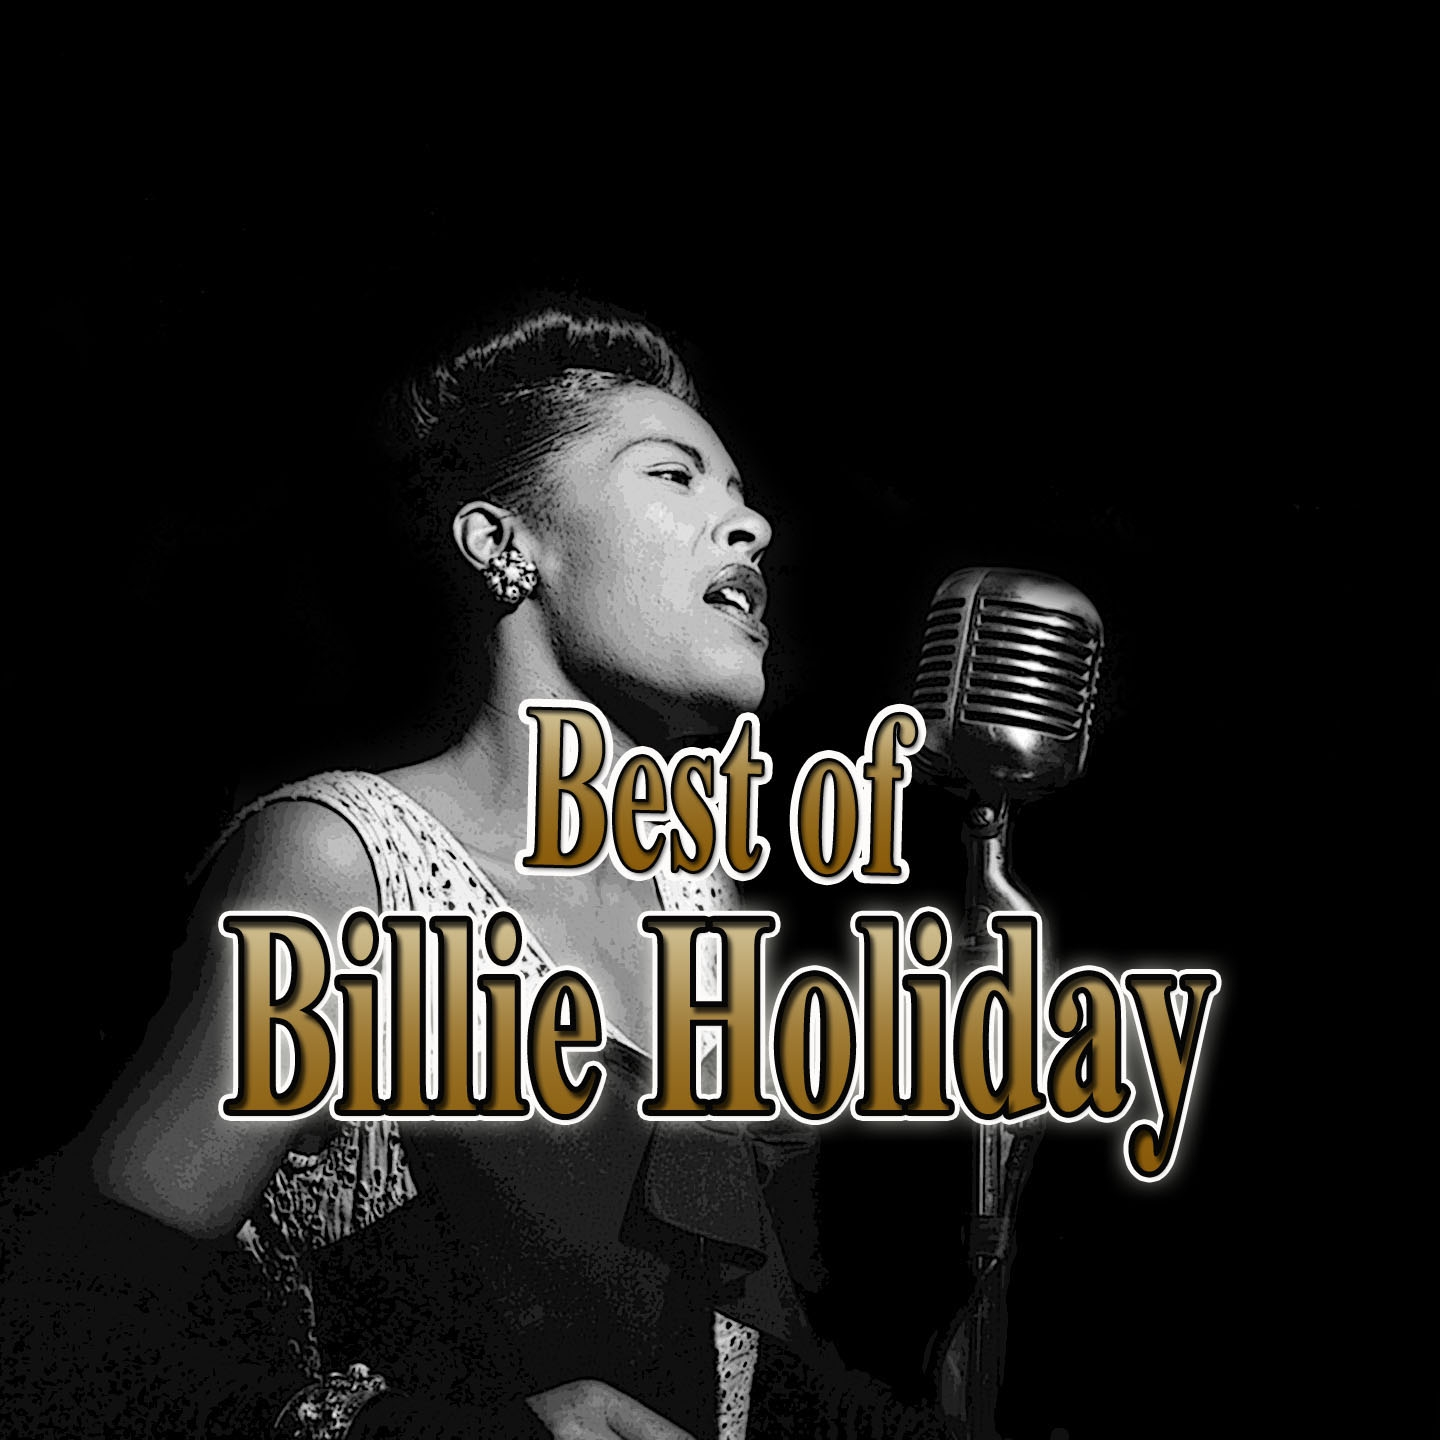 The Best Of Billie Holiday - On the Sunny Side of the Street, All of Me, And 23 Other Hits